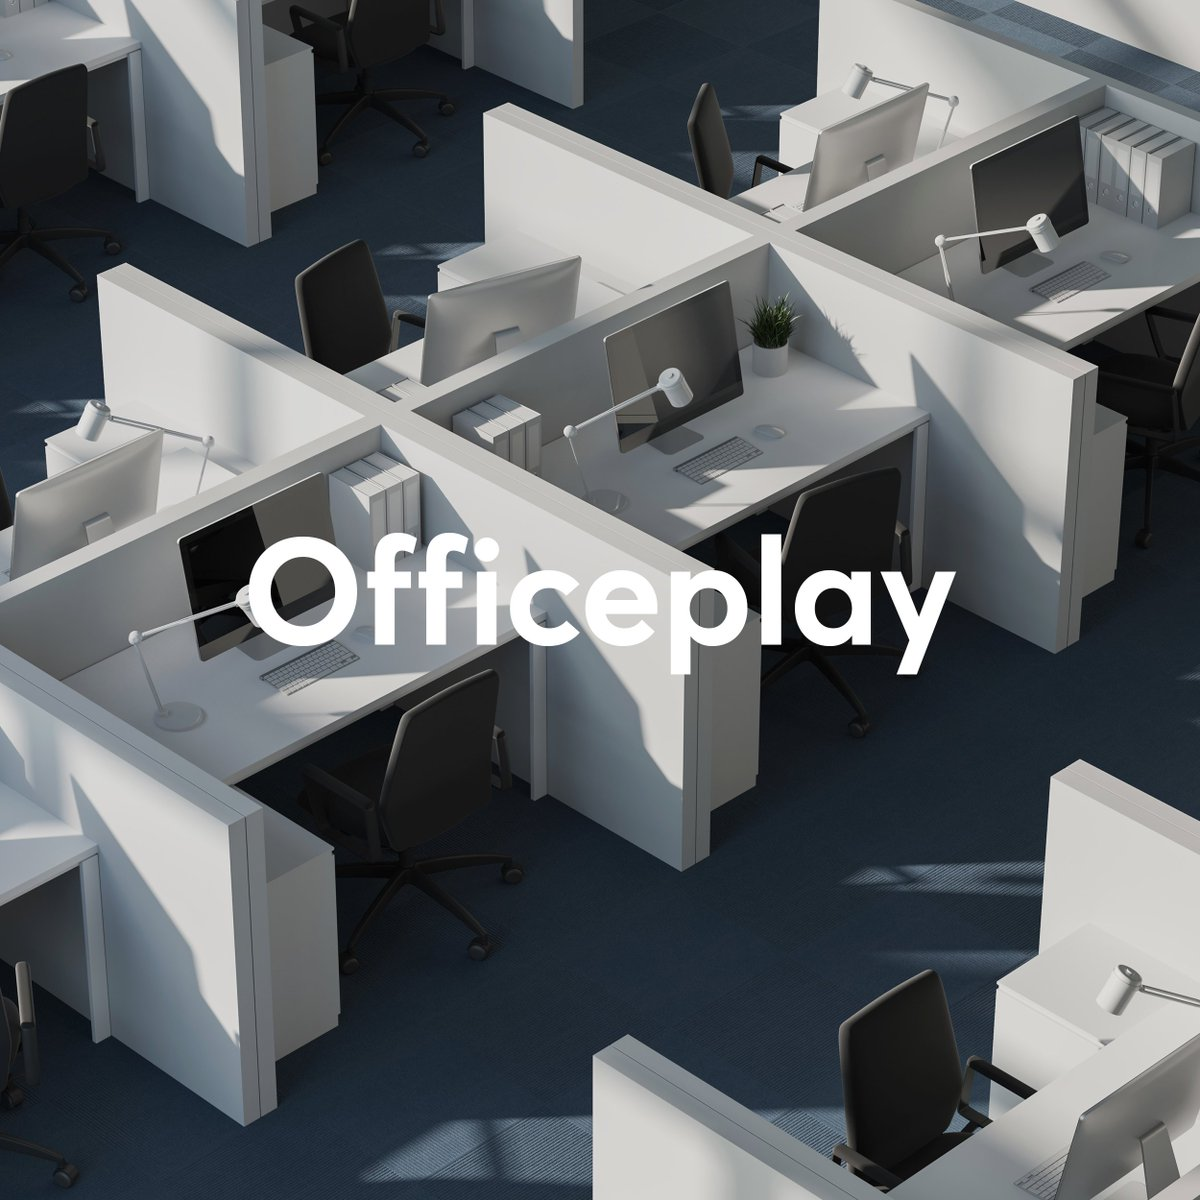 Workplace-inspired roleplay groups are popping up on Facebook.  New forms of #ImmersiveEntertainment are fulfilling our desire for the familiar. While #WFH provides the flexibility we need, fictional online offices provide the camaraderie we crave. http://bit.ly/2Xxjf7Vpic.twitter.com/wc0EdIEAdE